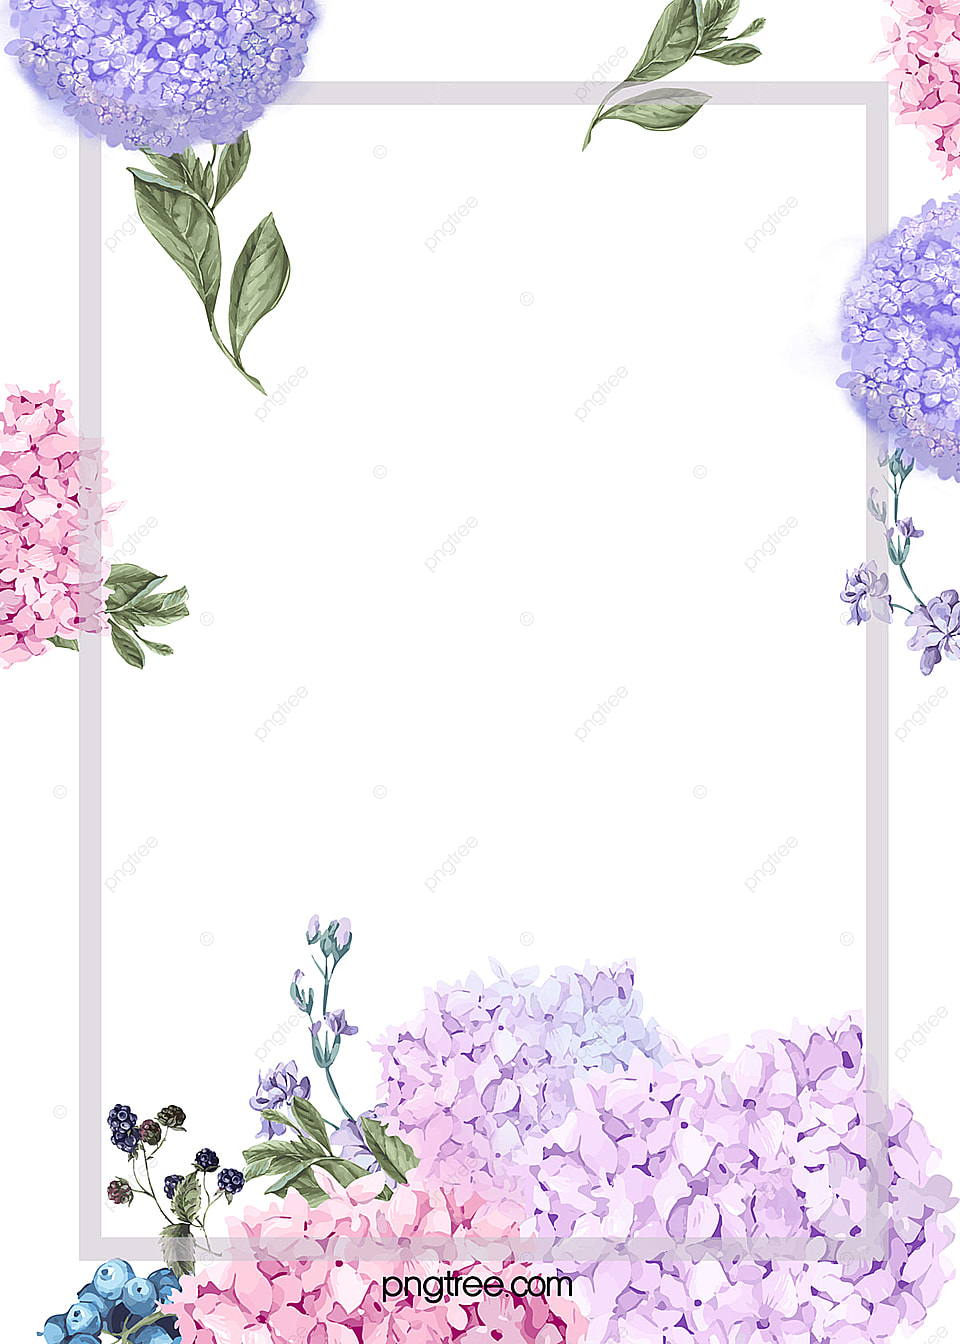 Elegant Watercolor Flowers Frame Background Elegant Watercolor